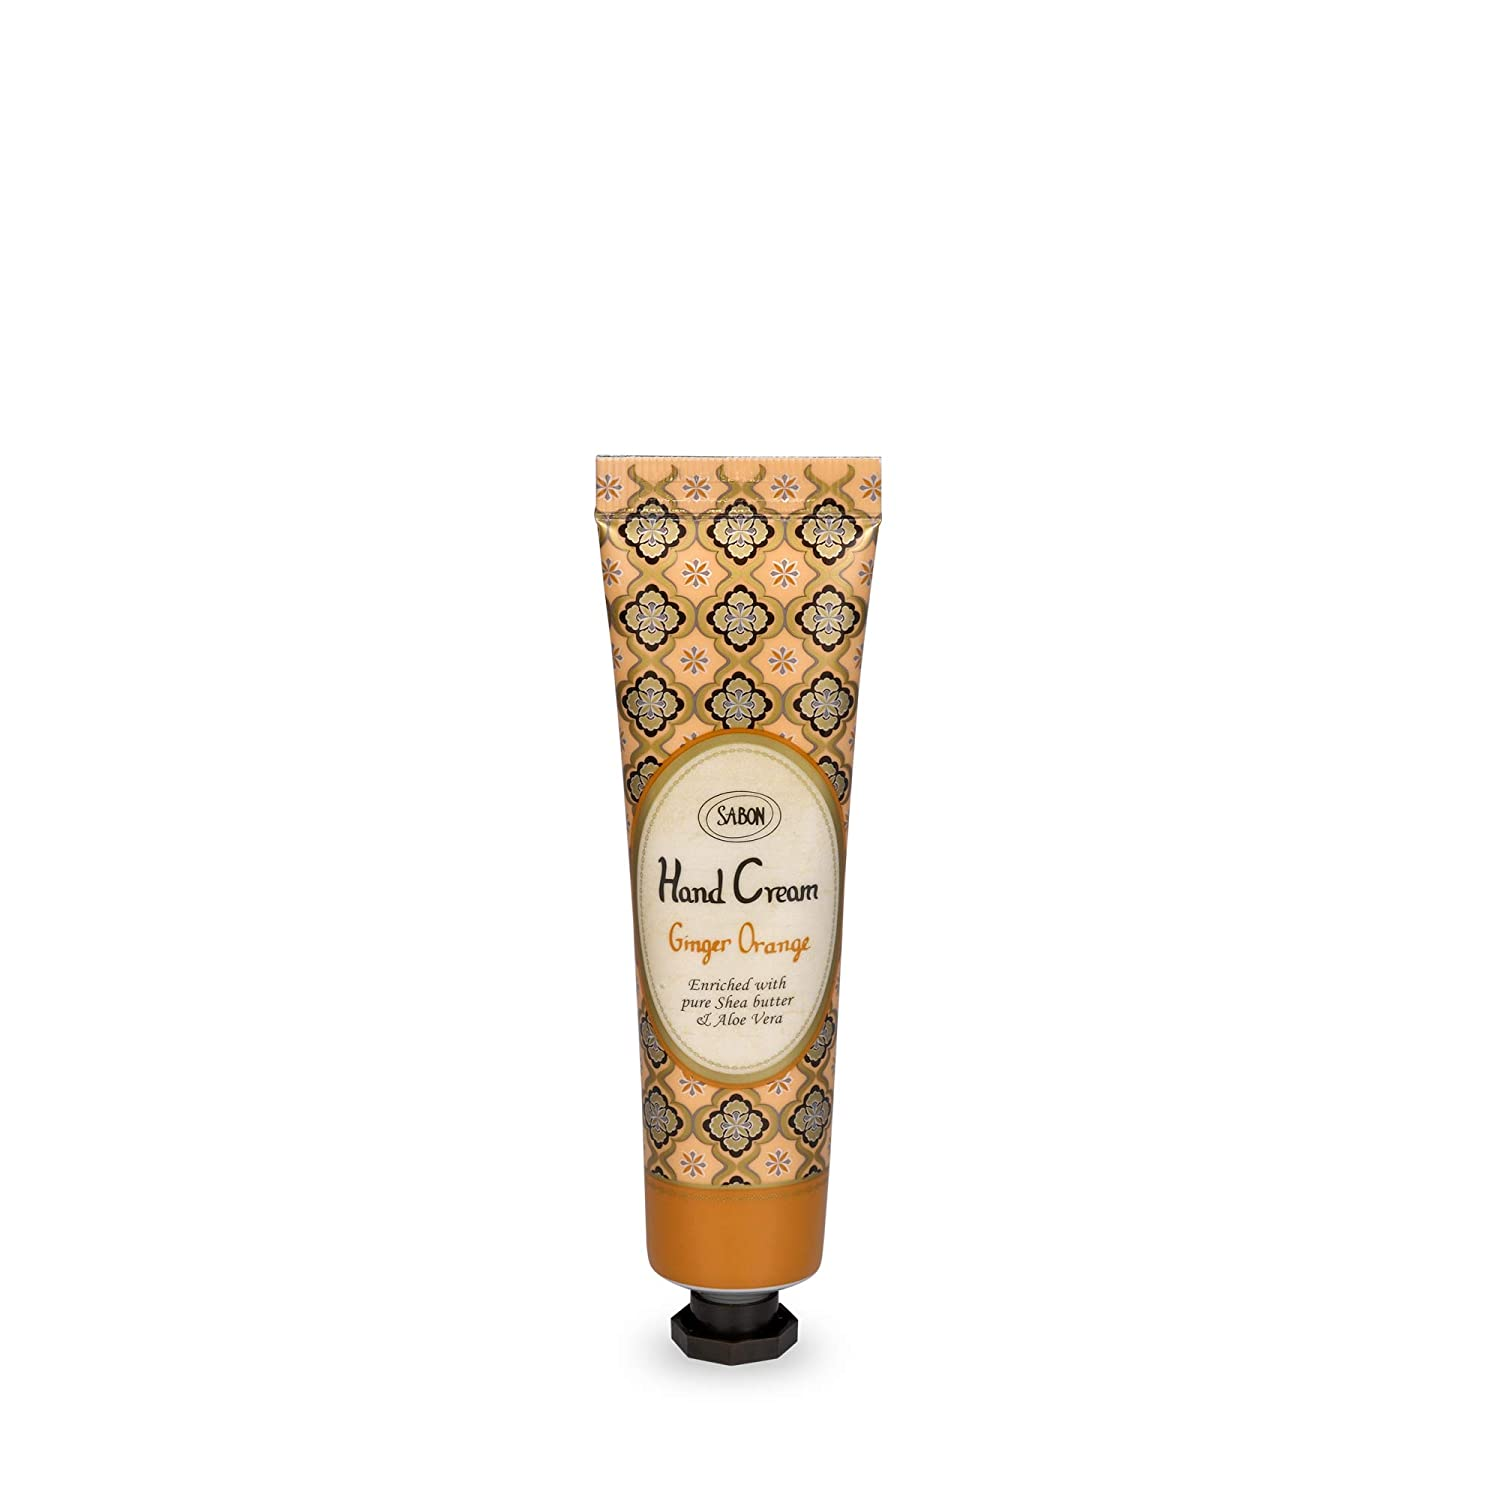 SABON Sabon - Mini Hand Cream - Hand Sanitizer with Aloe Vera Extracts and Shea Butter - SLS and Paraben Free - Ginger Orange, Ginger Orange, 30 ct.